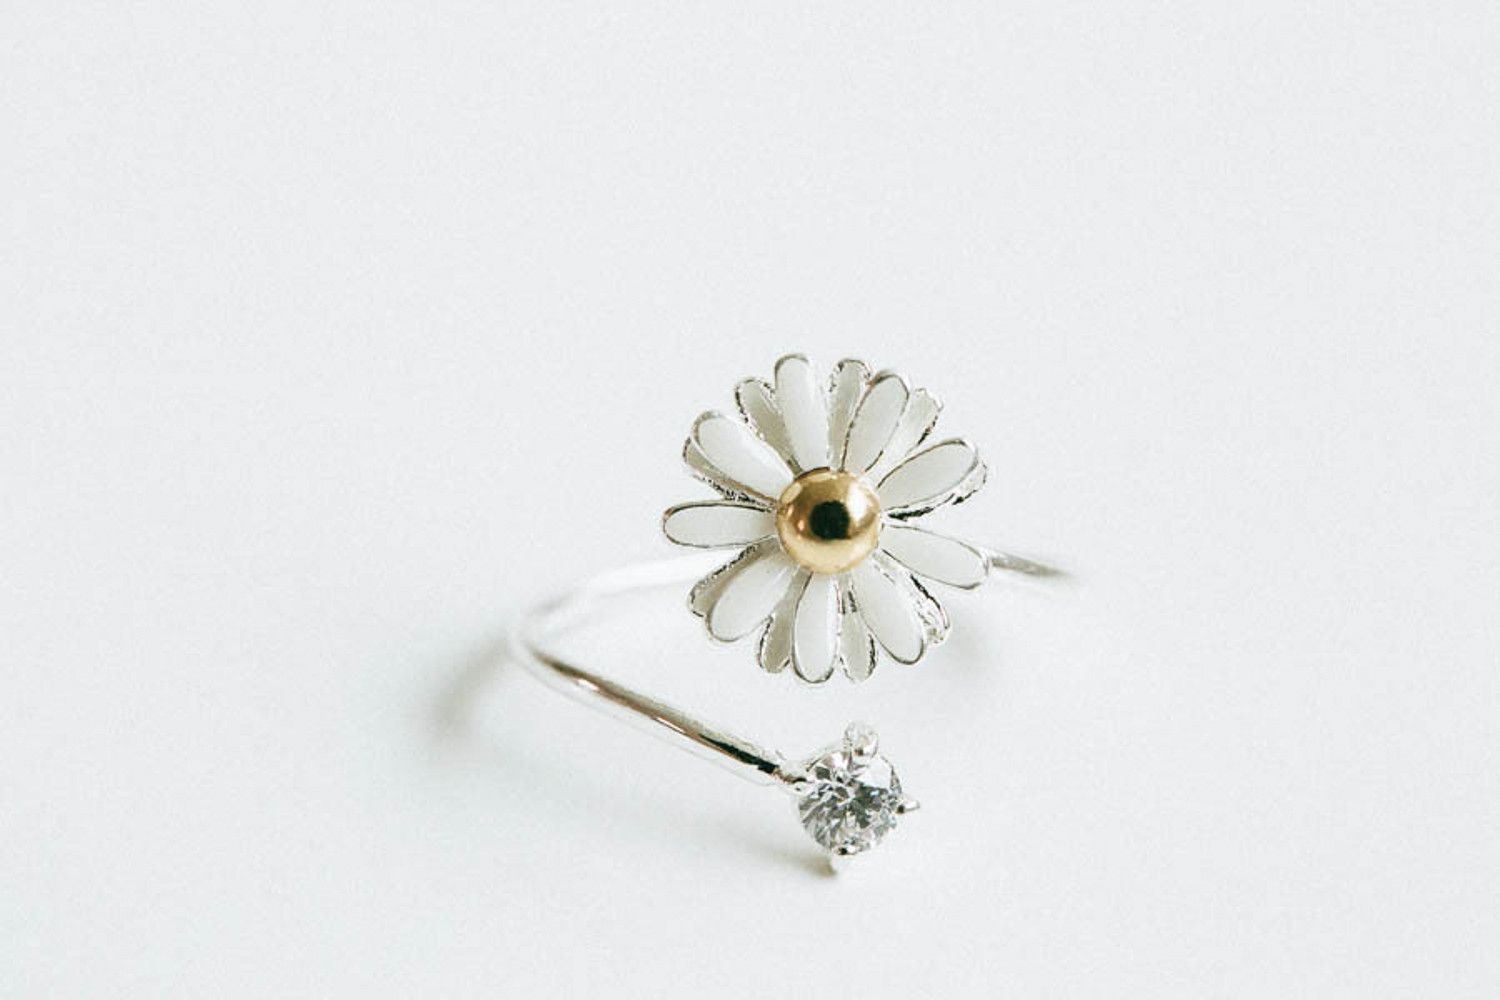 Cz daisy flower ring romantic jewelry gifts flower jewelry cz daisy flower ring romantic jewelry gifts flower jewelry available in silver gold or rose gold this stainless steel jewelry is sure to beco izmirmasajfo Image collections